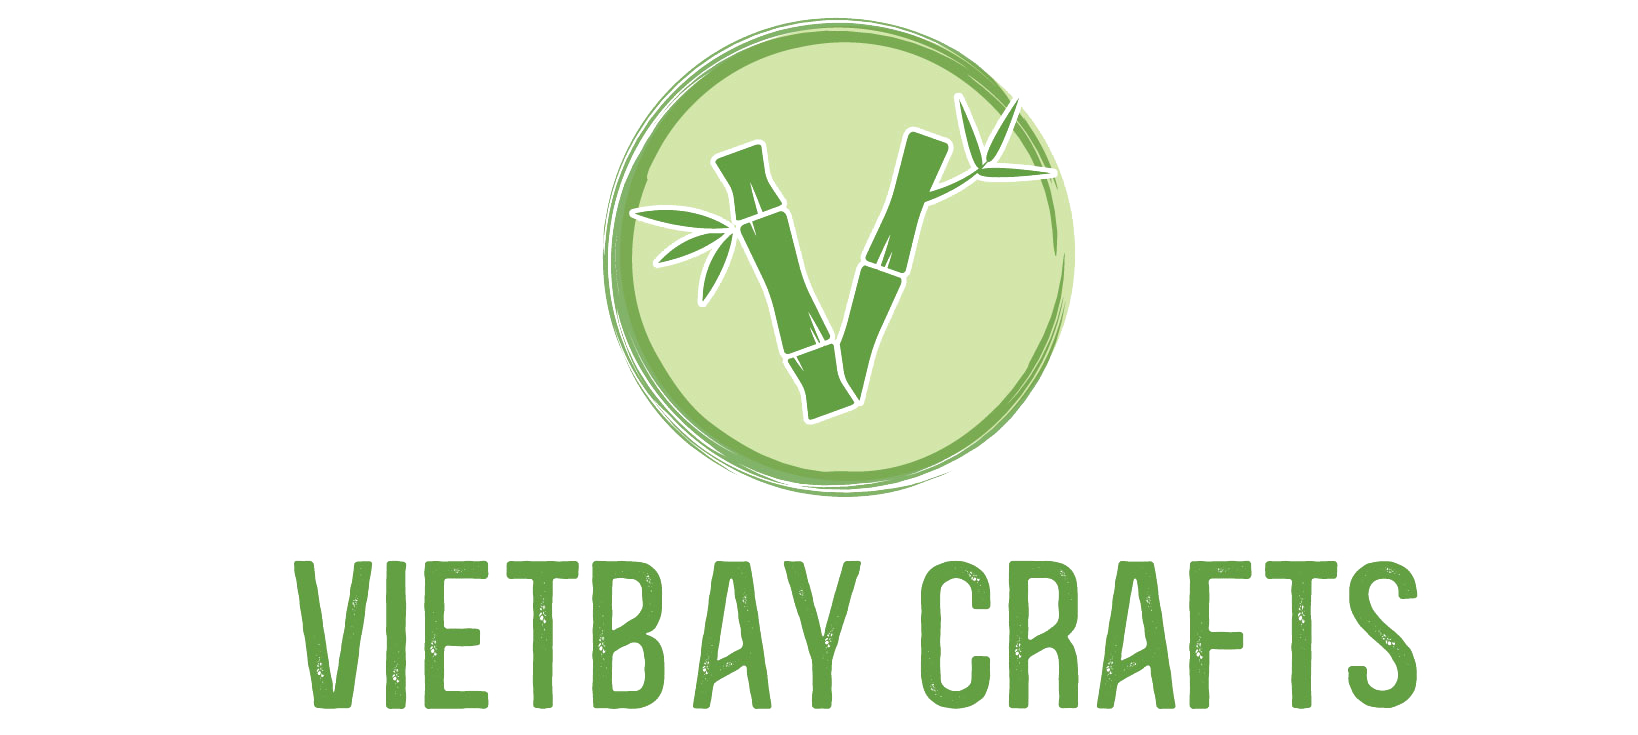 Vietbaycrafts.com | High Quality Handicraft in Vietnam